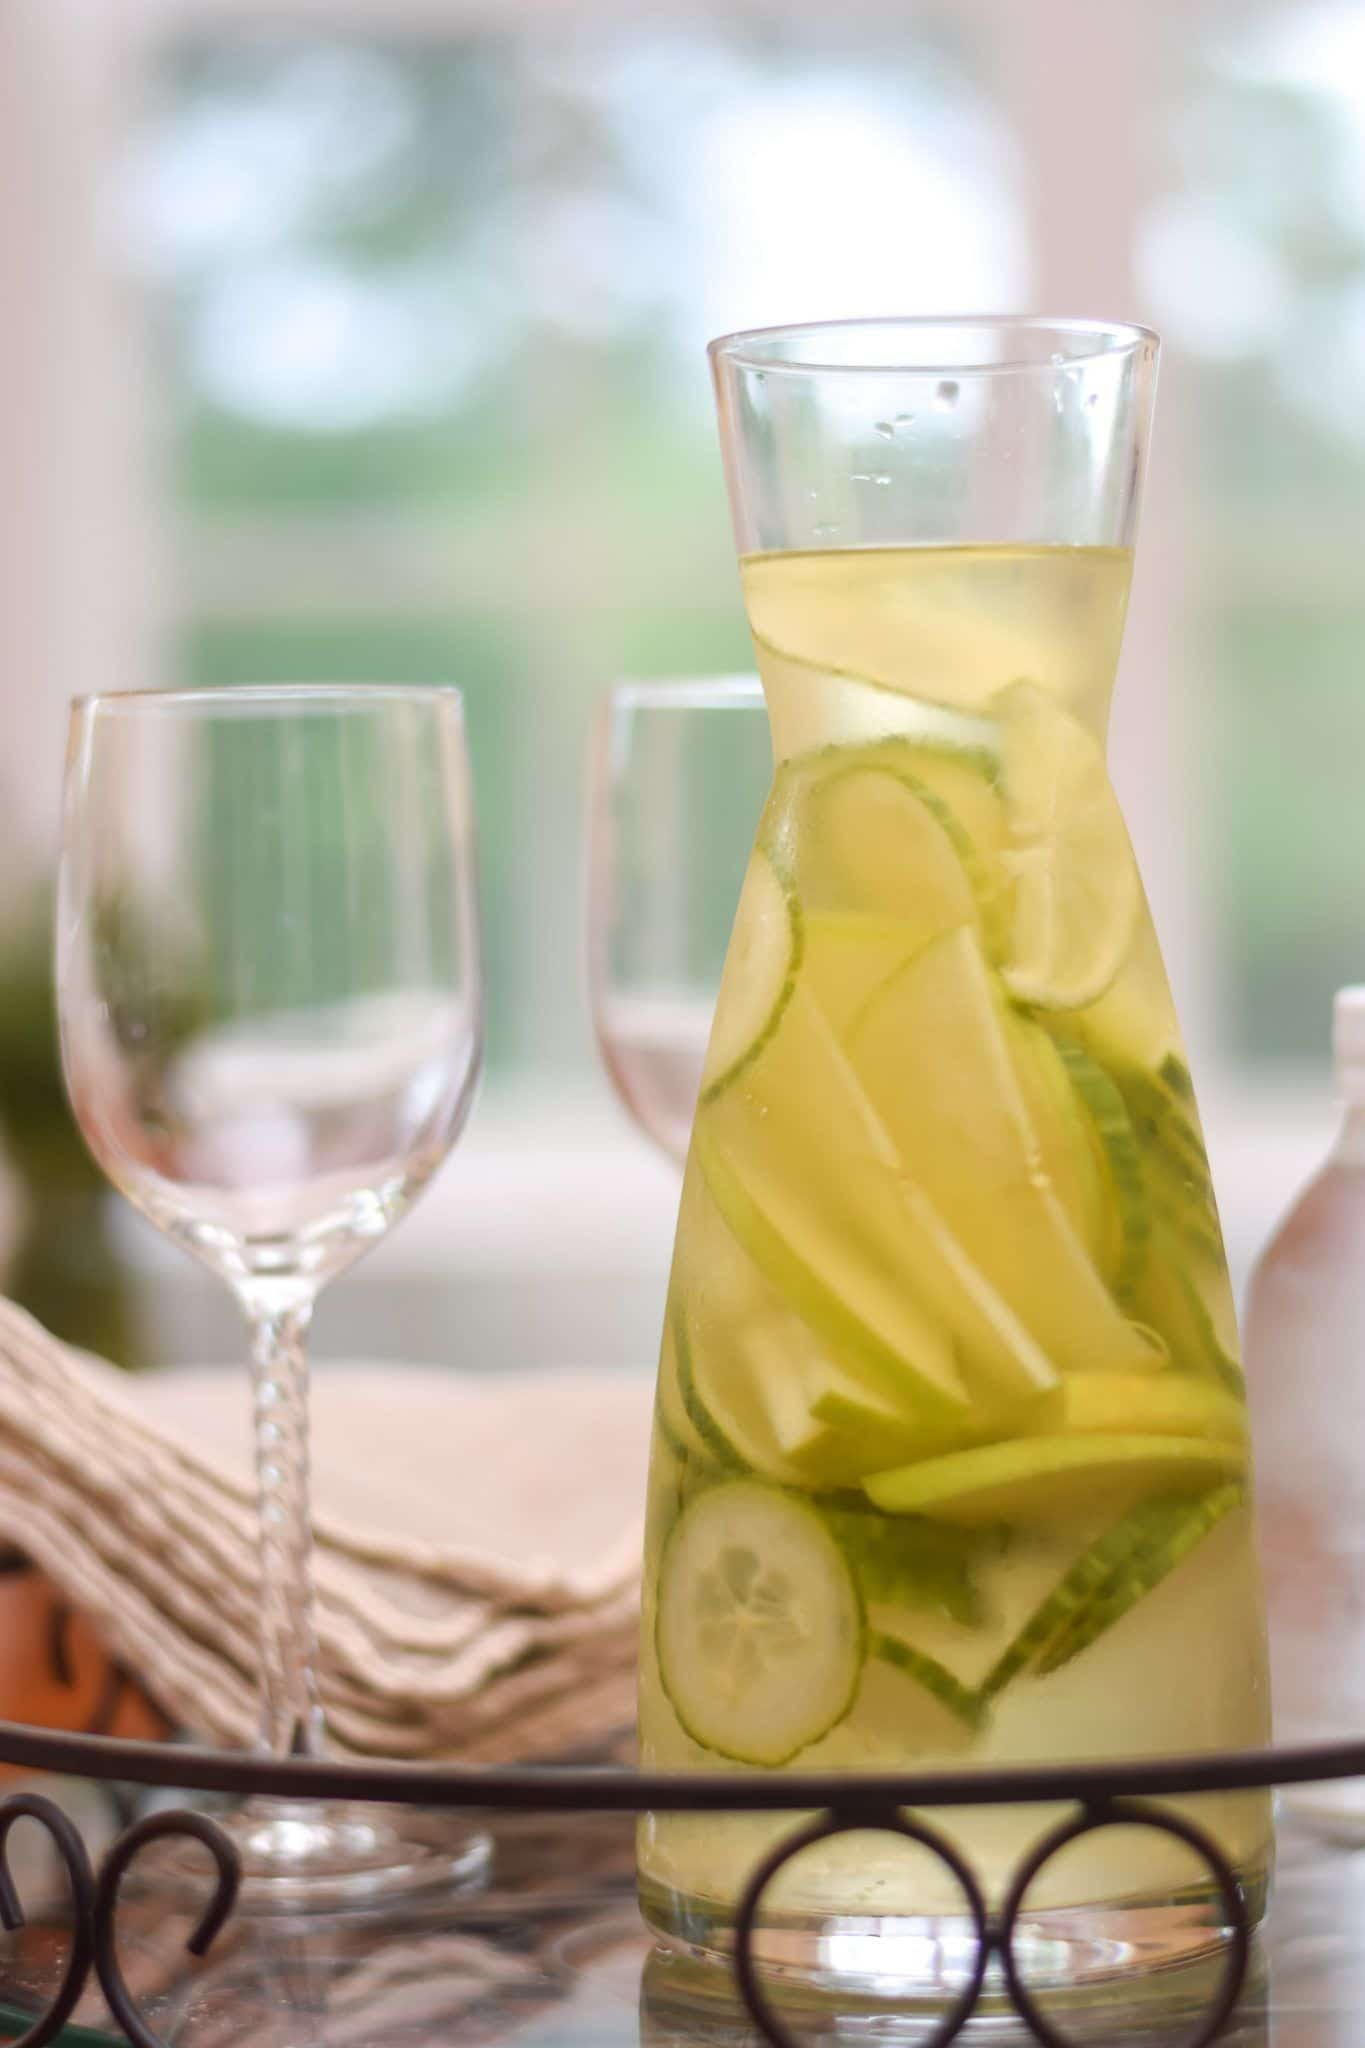 Oh yum..this White Wine Sangria recipe is perfect for a hot summer evening. The cucumber, apple and lime just really'dress up' a glass of wine. And topped with a splash of seltzer, it's the perfect and refreshing drink for entertaining or just relaxing.